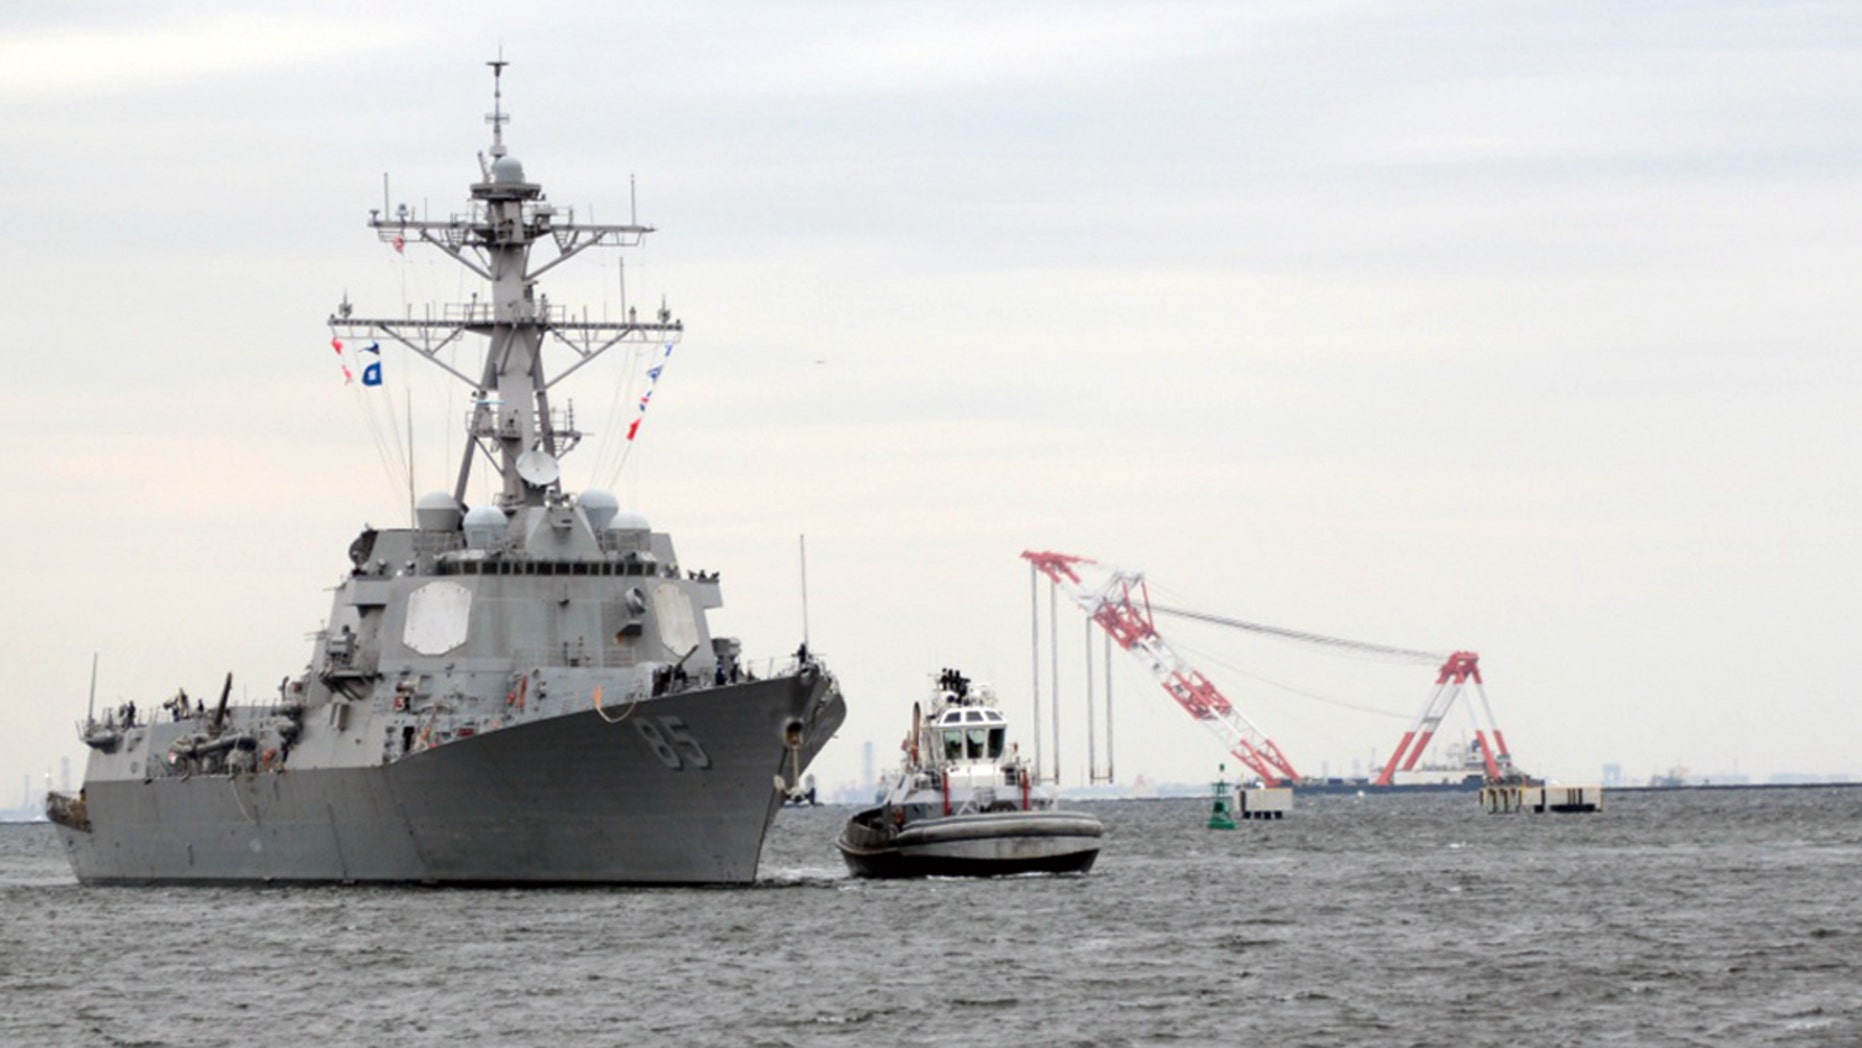 The guided-missile destroyer USS McCampbell in a 2015 photo.